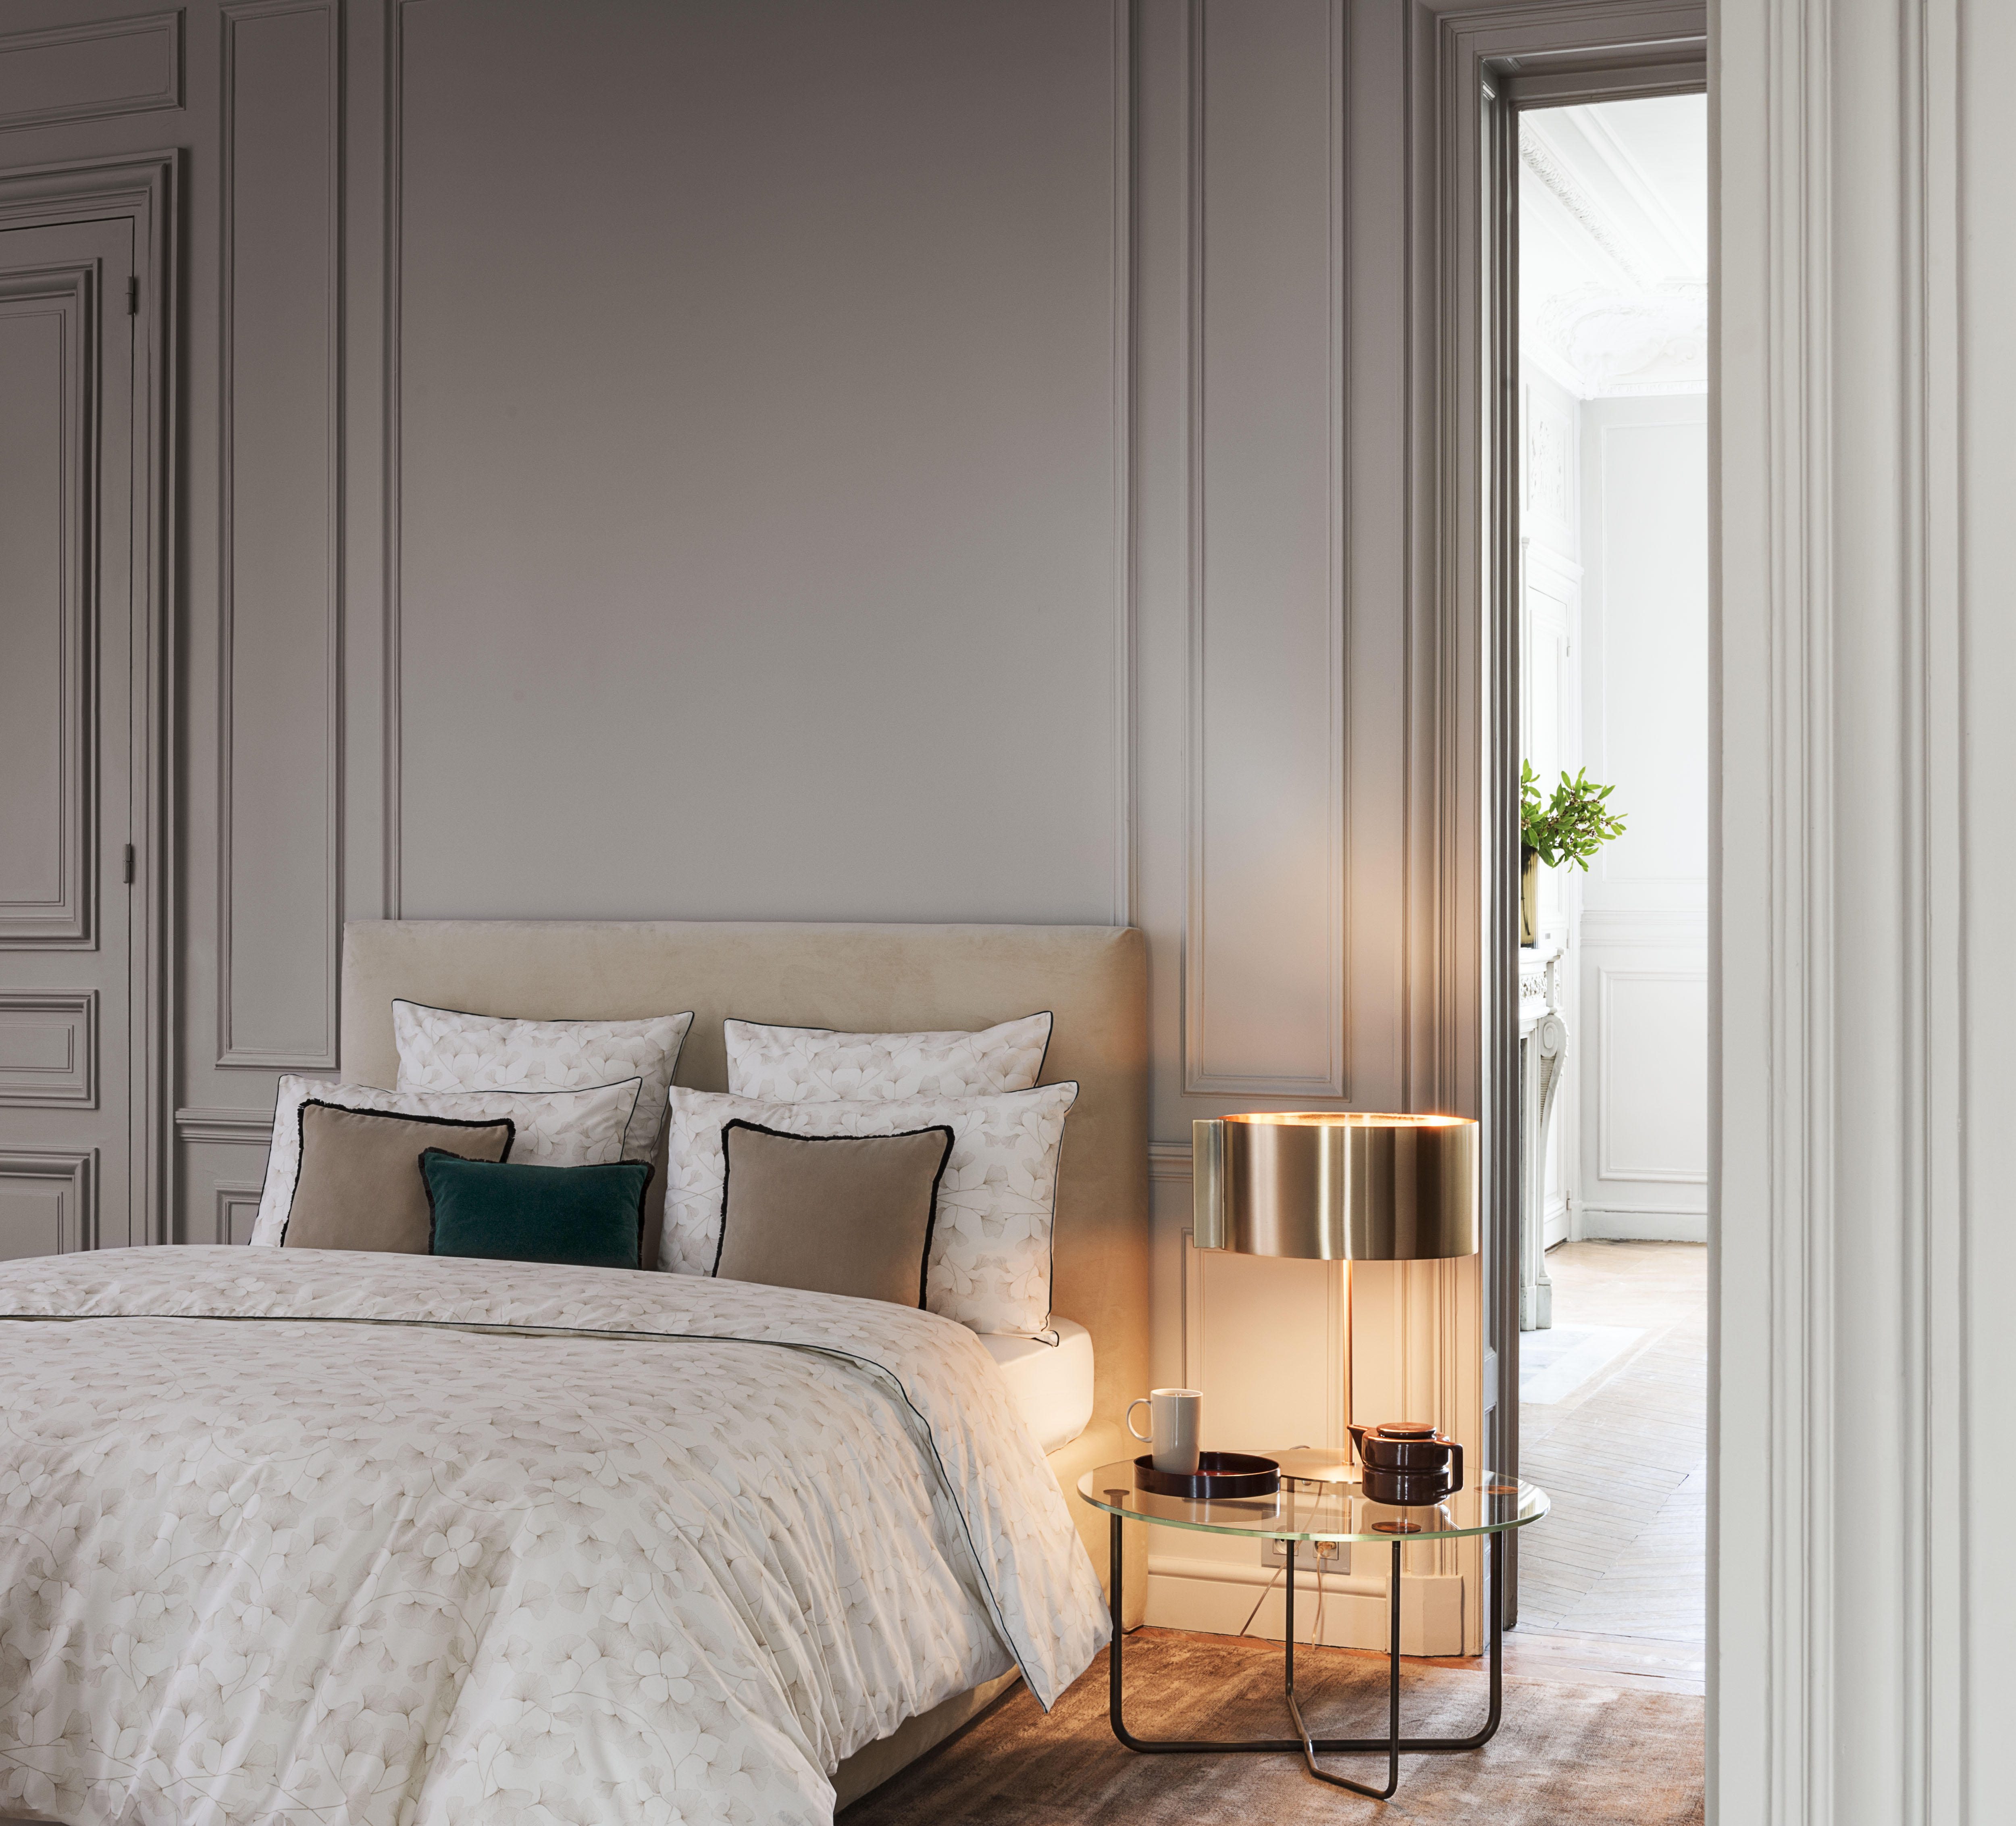 descamps parures de lit chics d coration savoir faire fran ais paris frivole. Black Bedroom Furniture Sets. Home Design Ideas